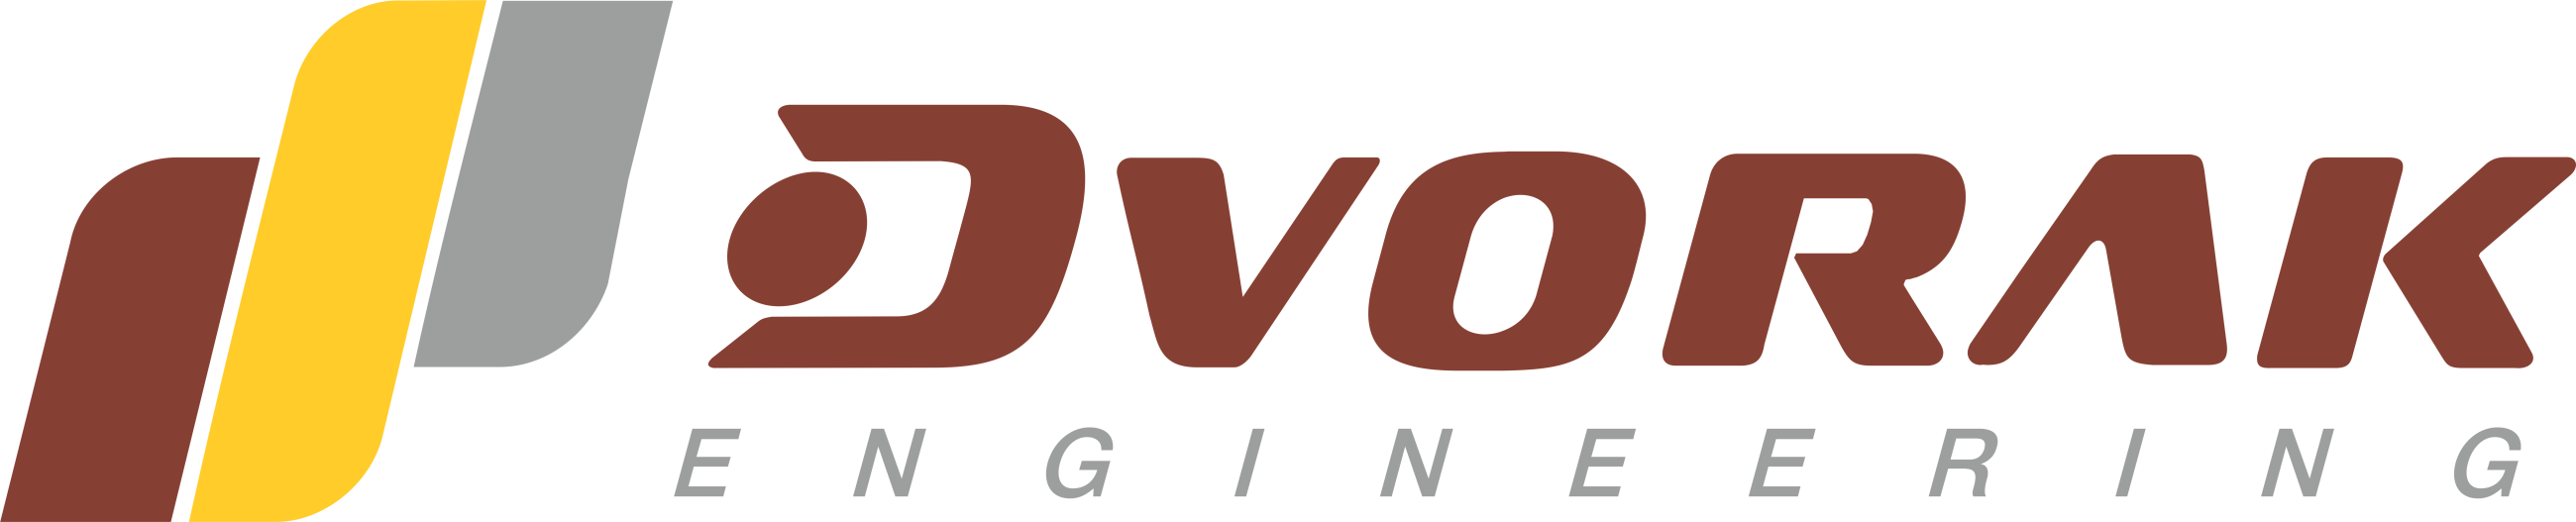 Dvorak-engineering, Ltd.